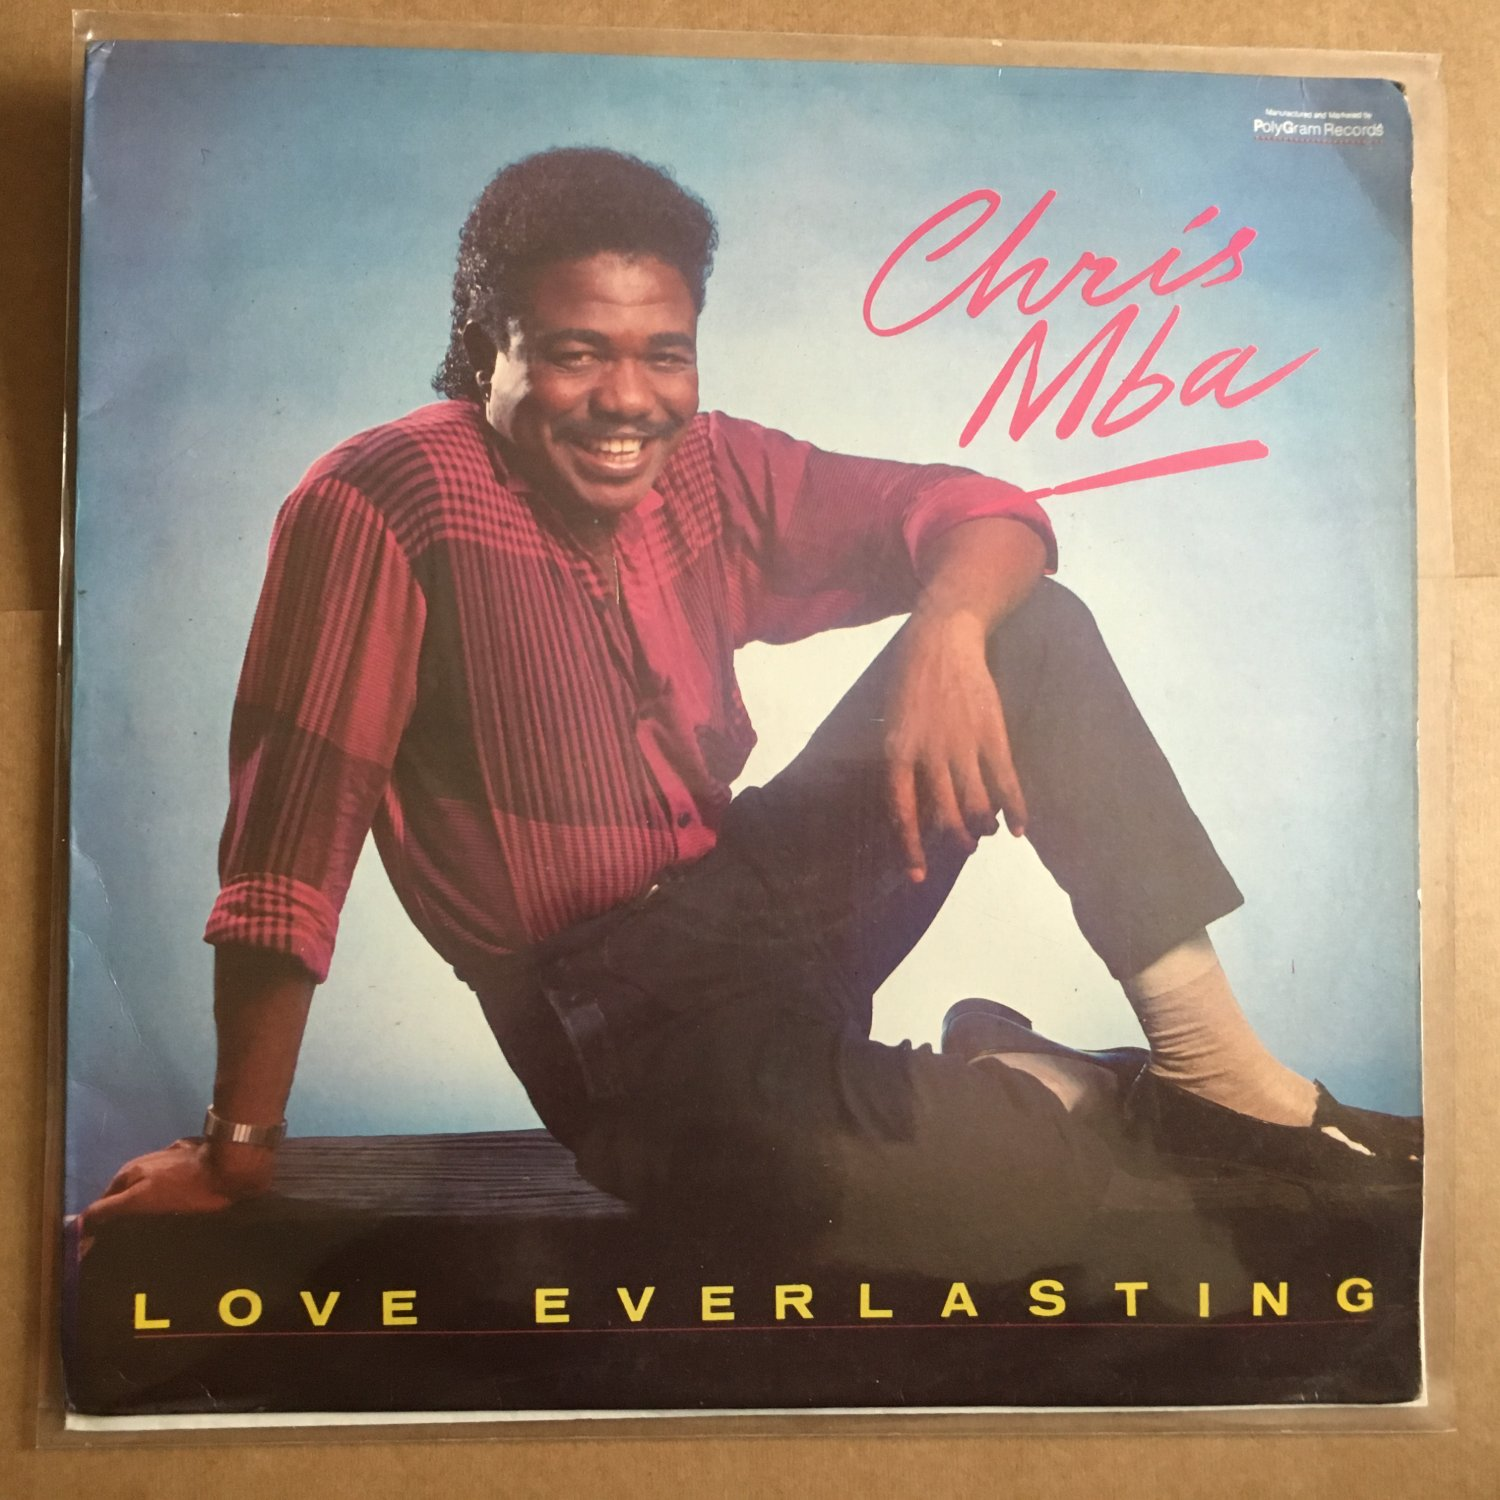 CHRIS MBA LP love everlasting NIGERIA AFRO BOOGIE FUNK mp3 LISTEN